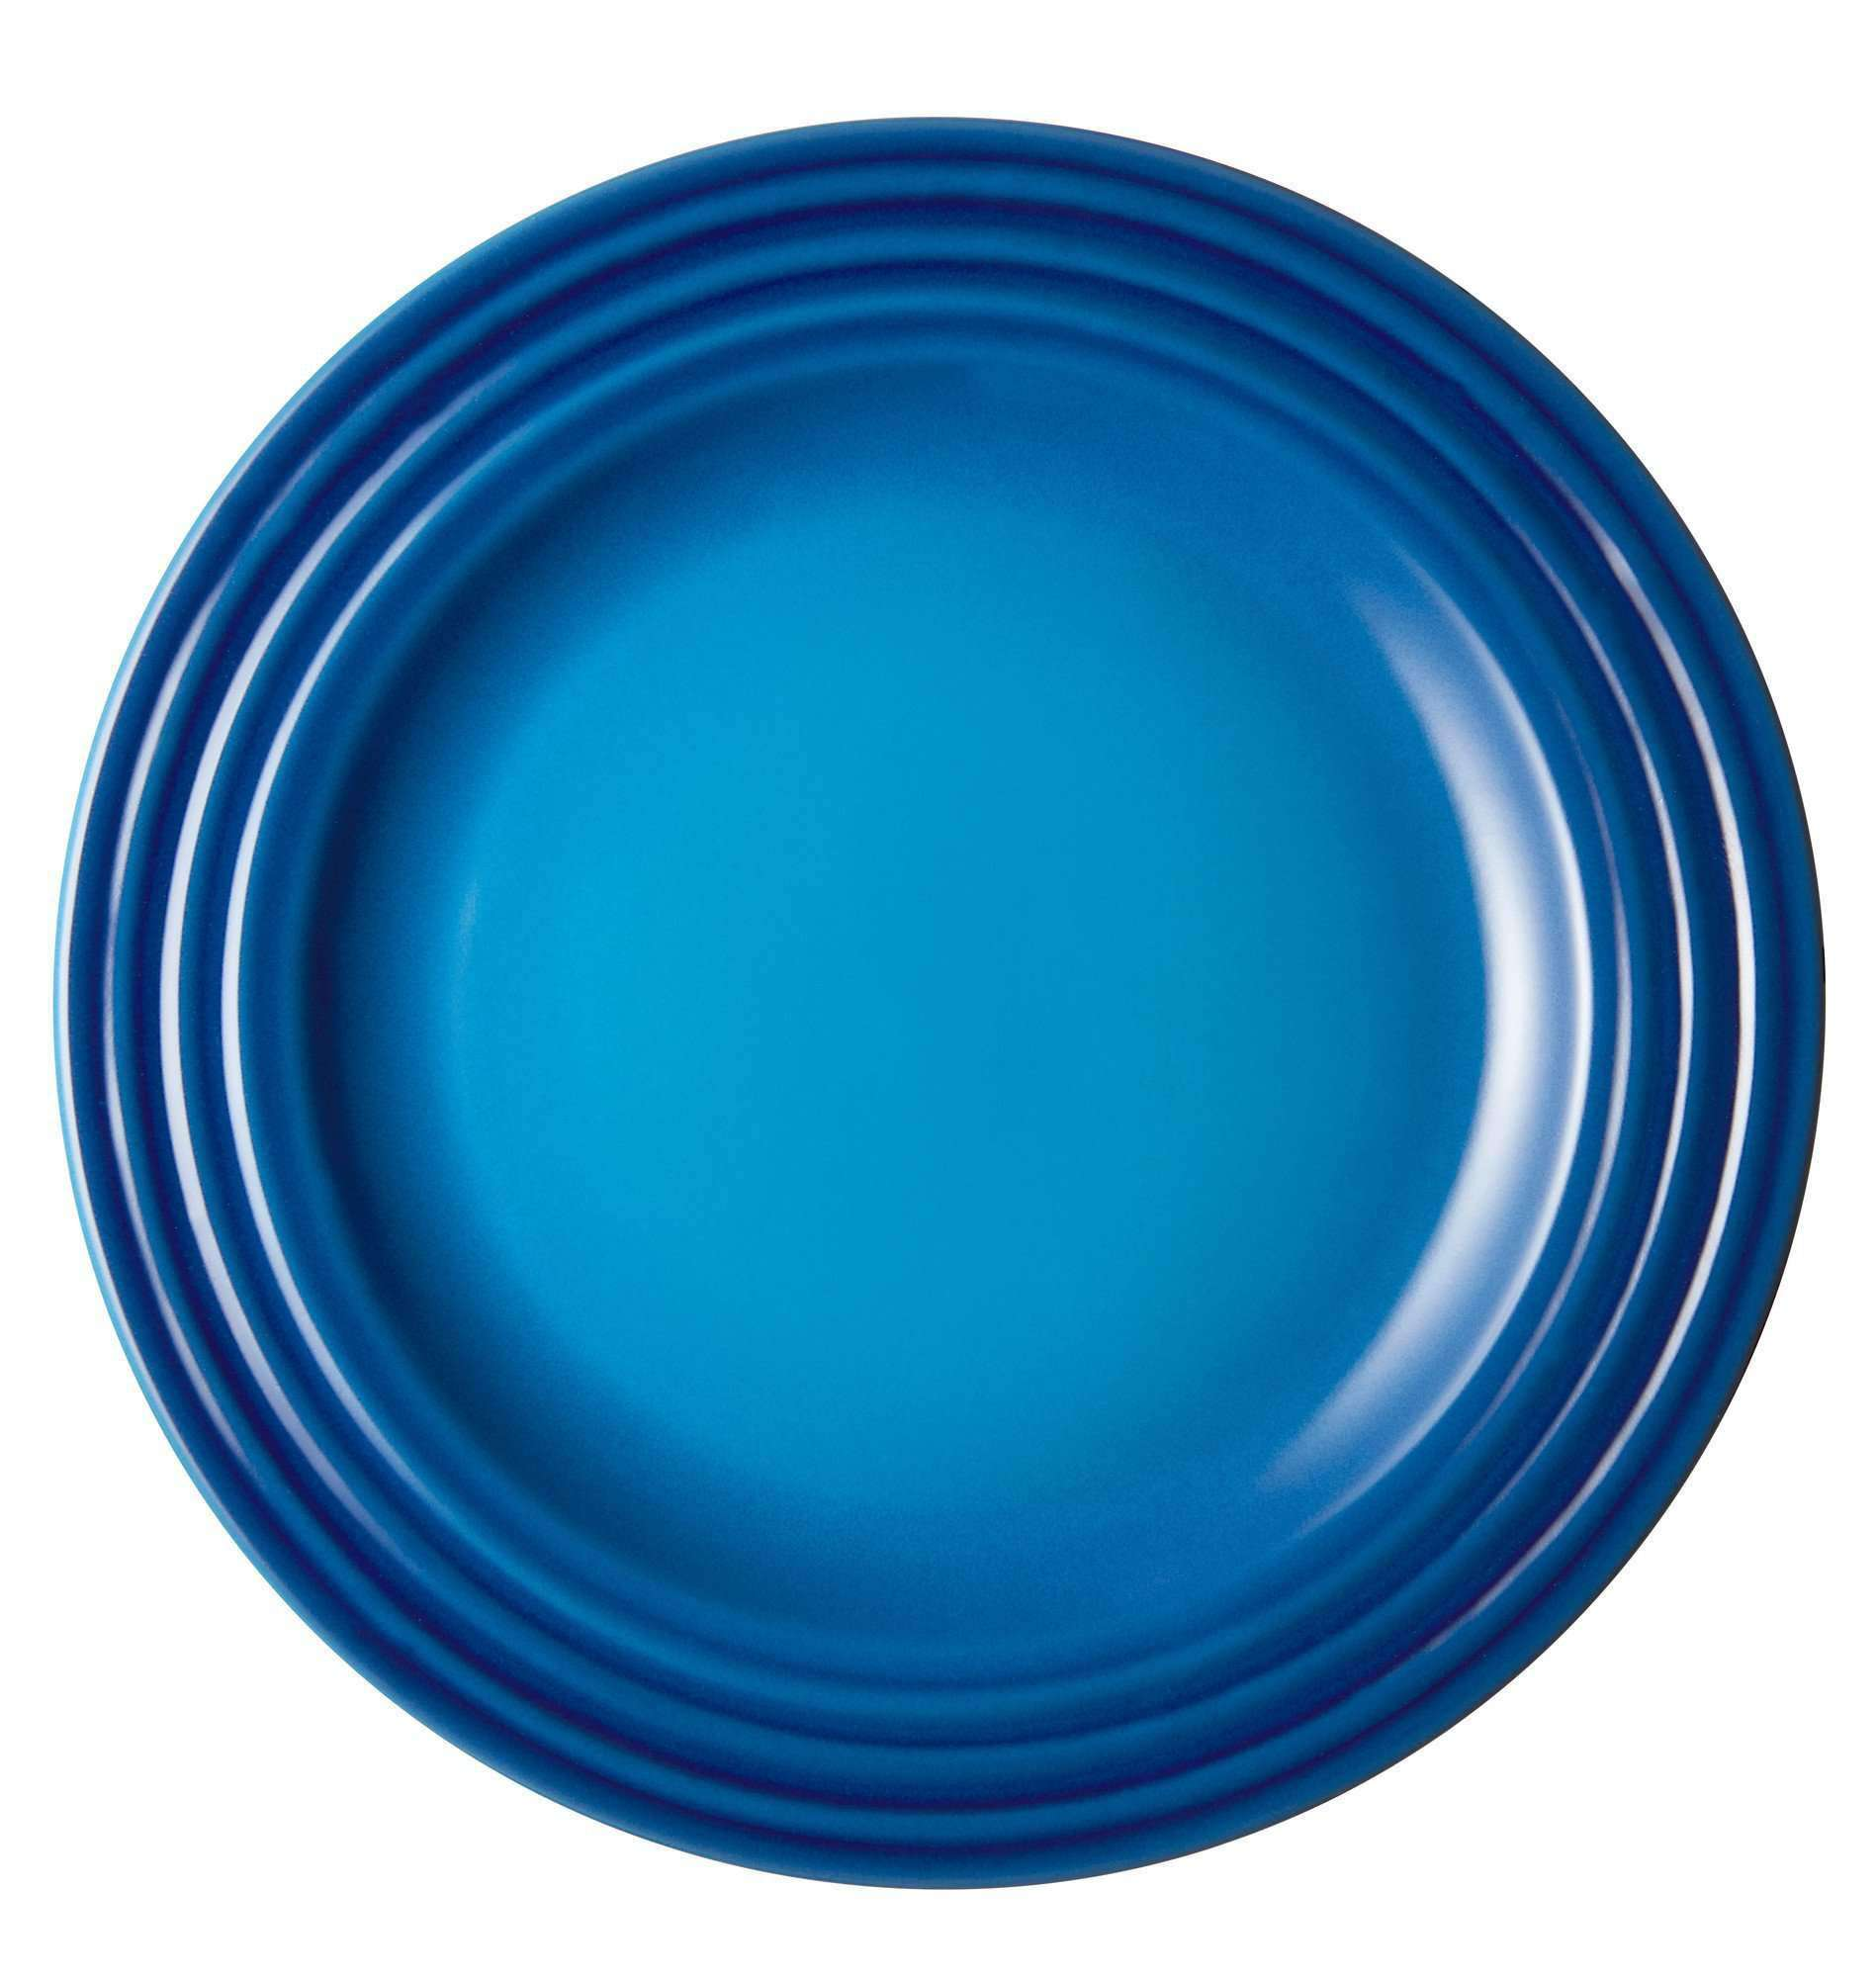 Le Creuset Stoneware Salad Plates - Set of 4 - Kitchen Smart